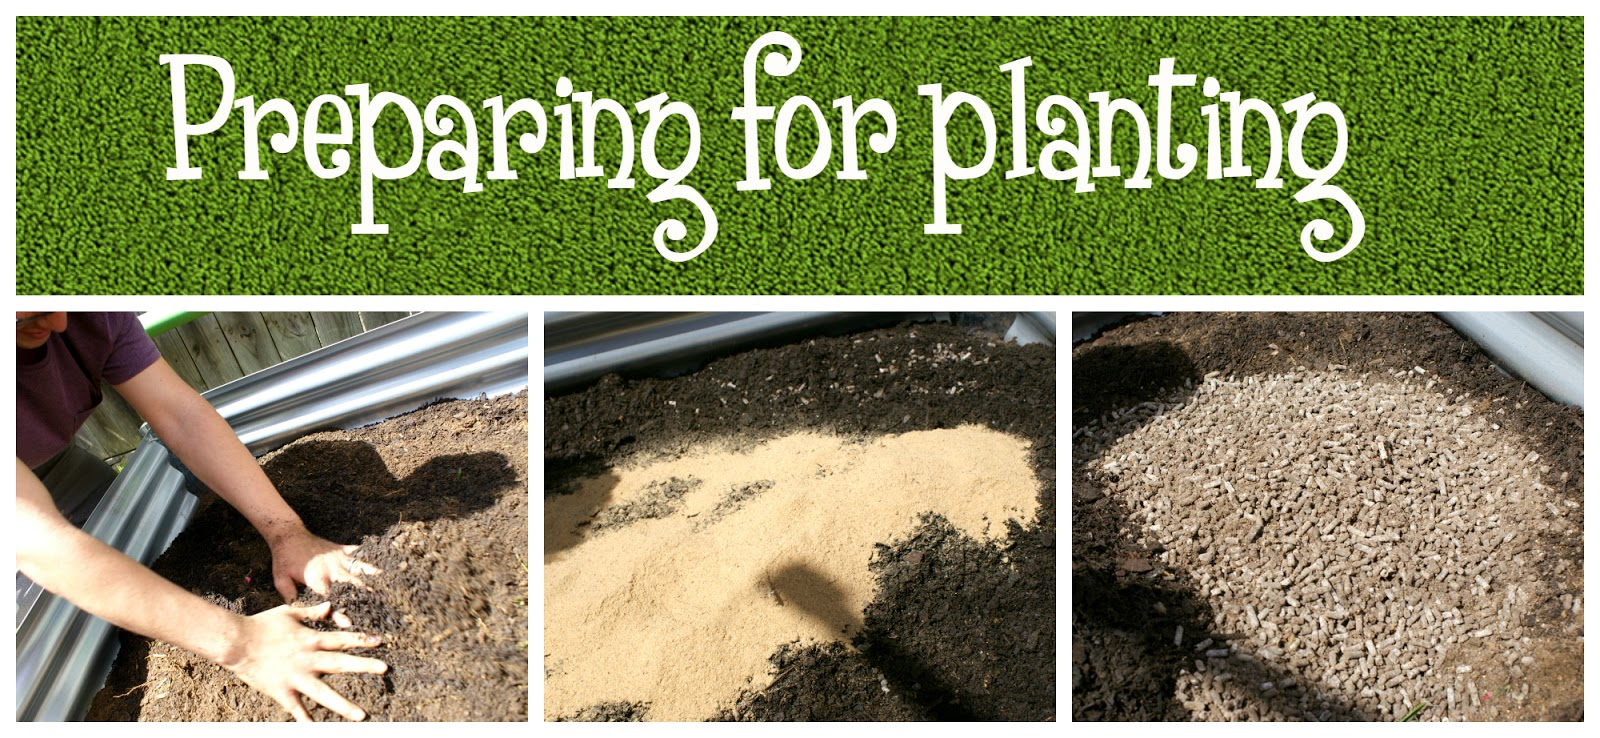 How to prepare your soil for planting vegetables - Growing veggies from seed